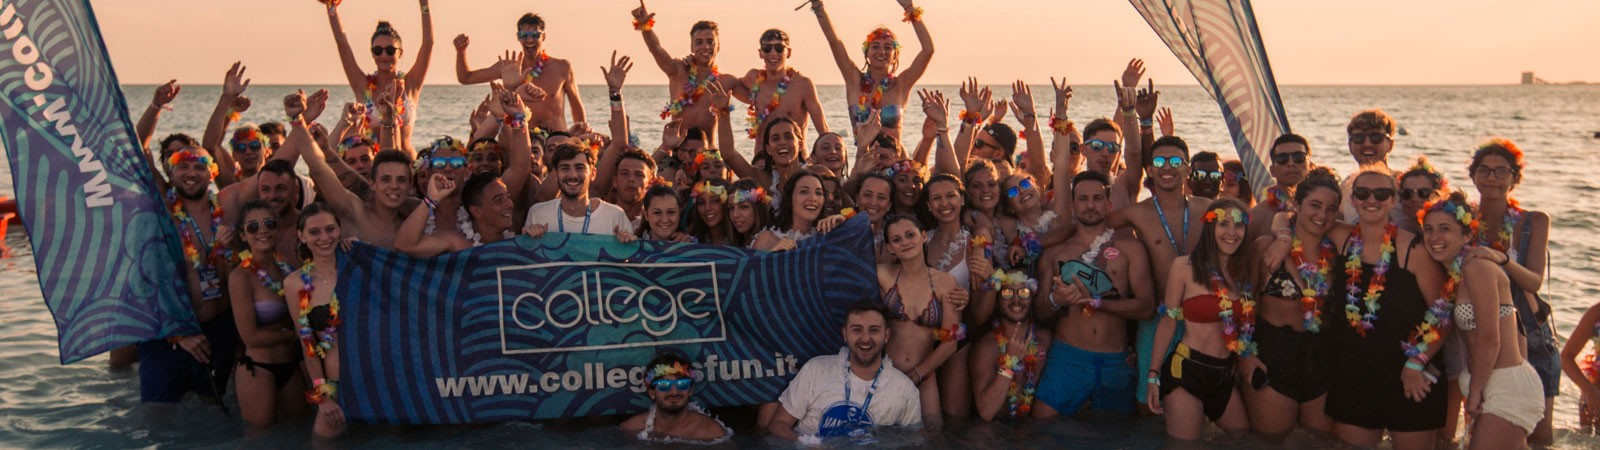 College Experience - gruppo student village